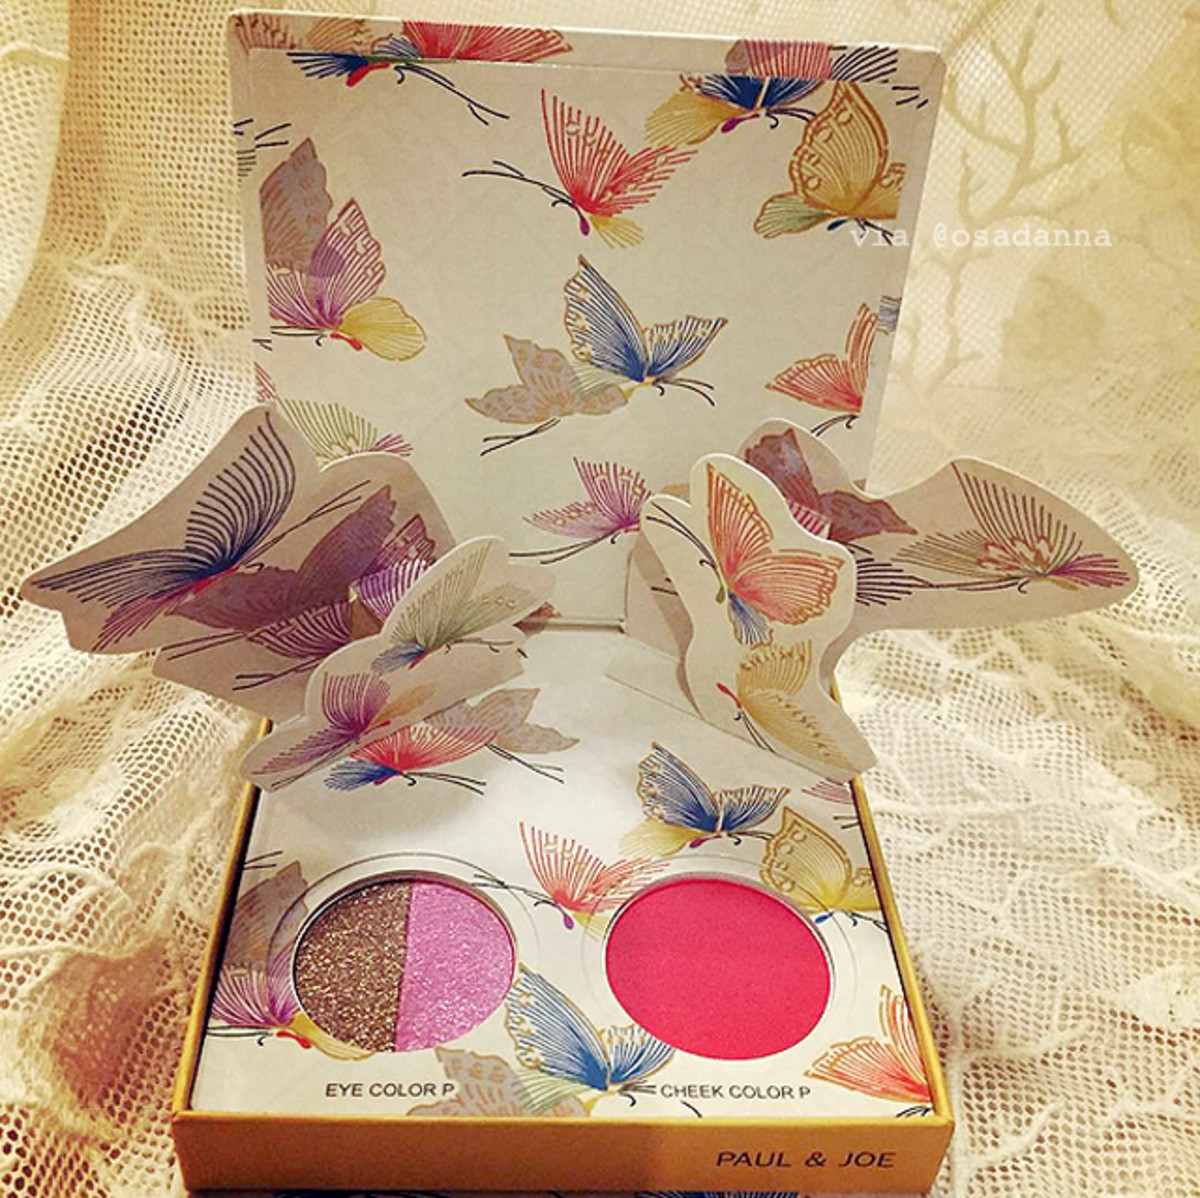 Paul & Joe Beauté Spring 2016 sneak peek Papillons de Printemps